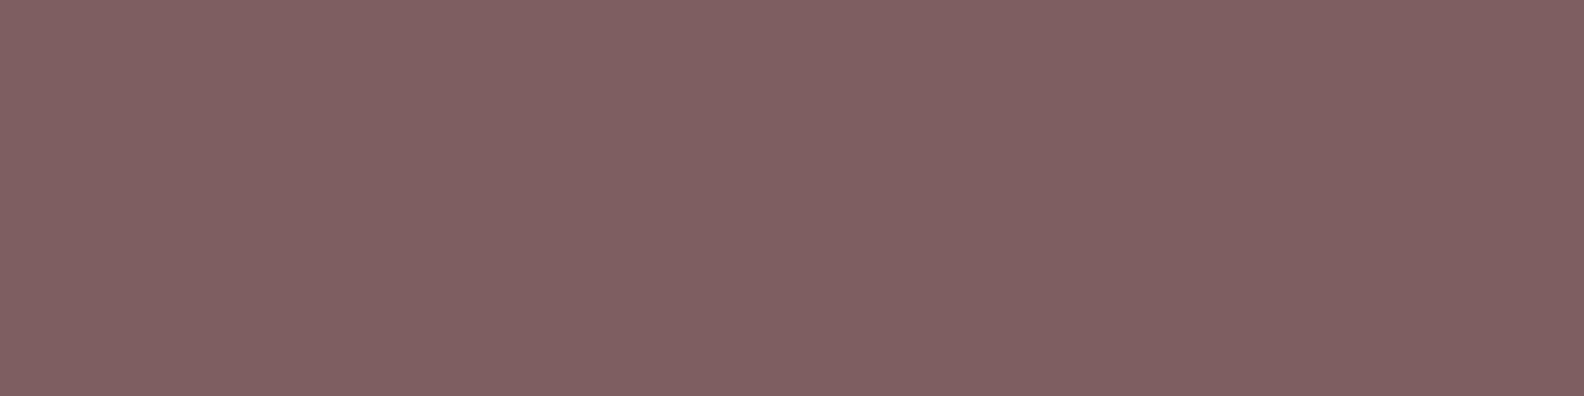 1584x396 Deep Taupe Solid Color Background